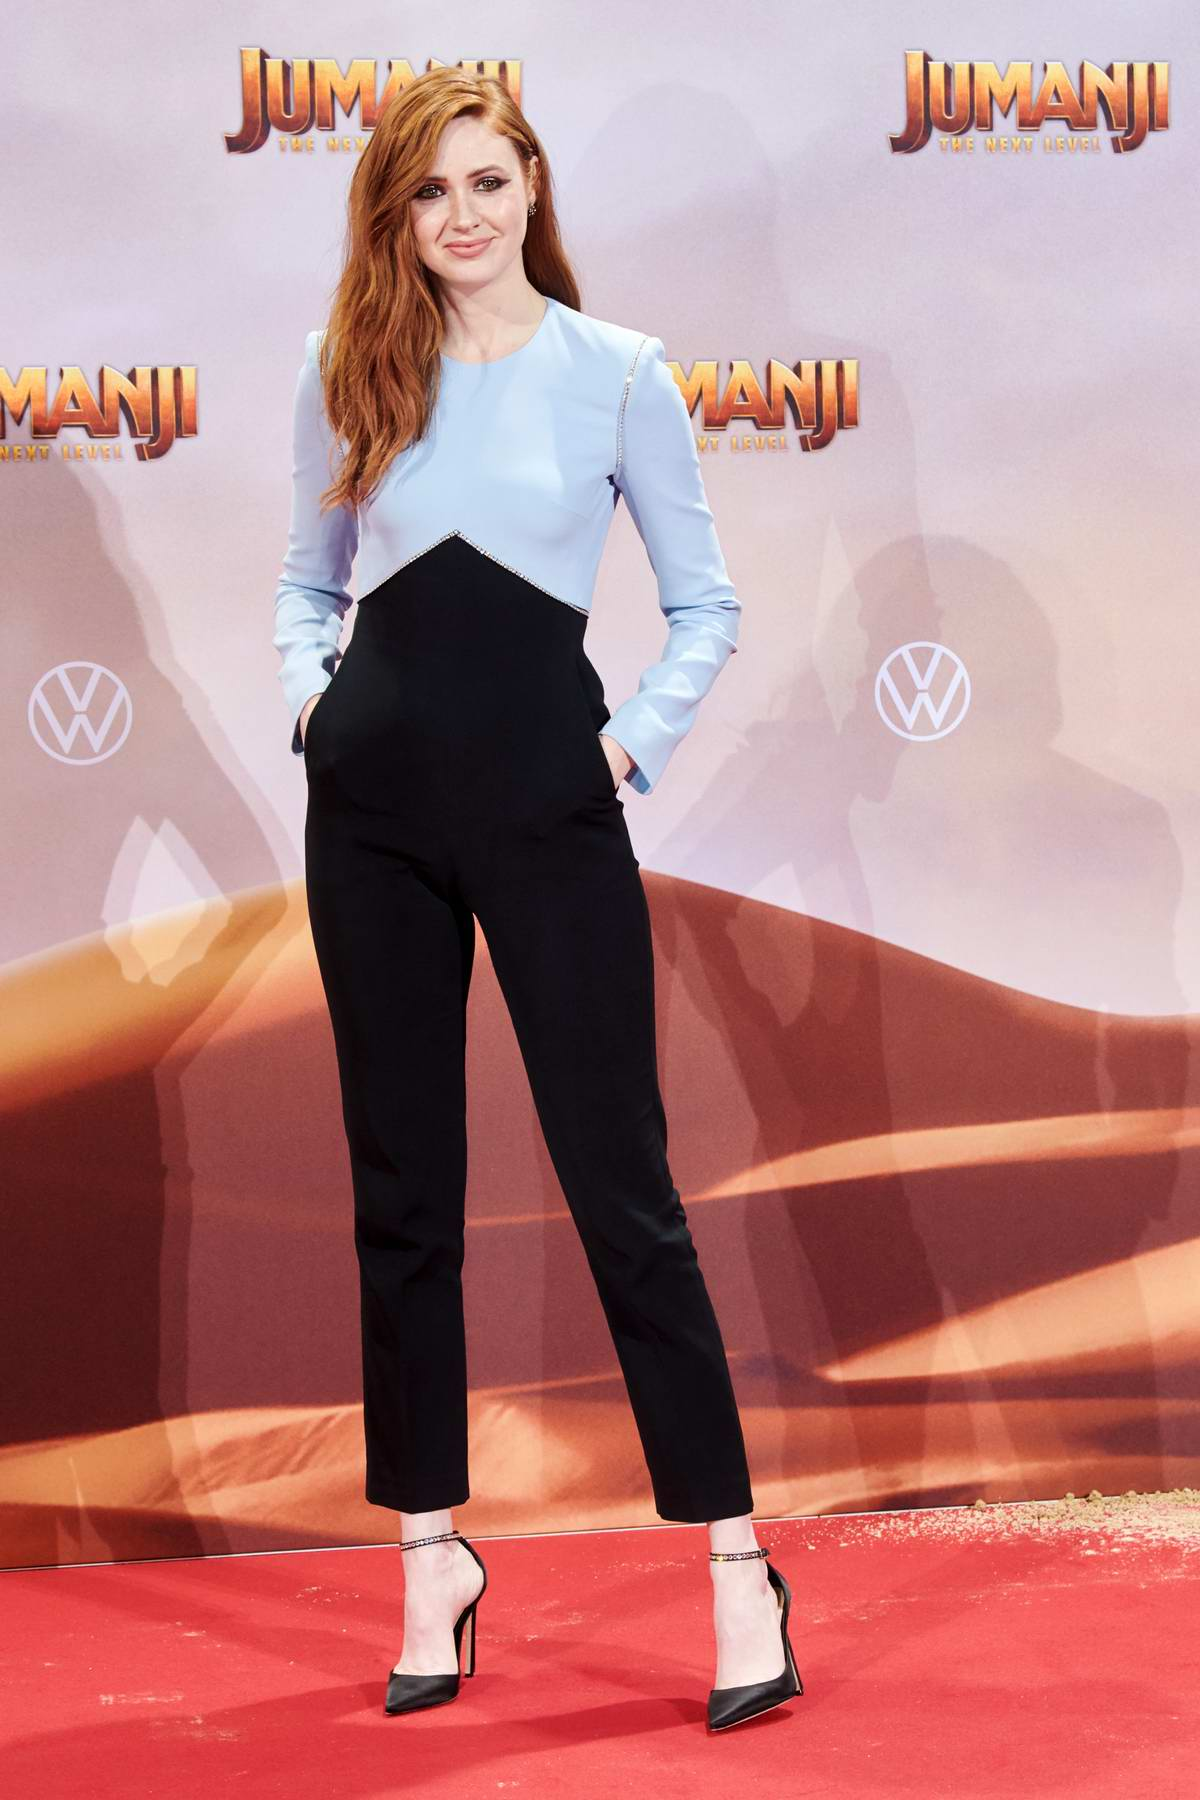 Karen Gillan attends the Premiere of 'Jumanji: The Next Level' in Berlin, Germany